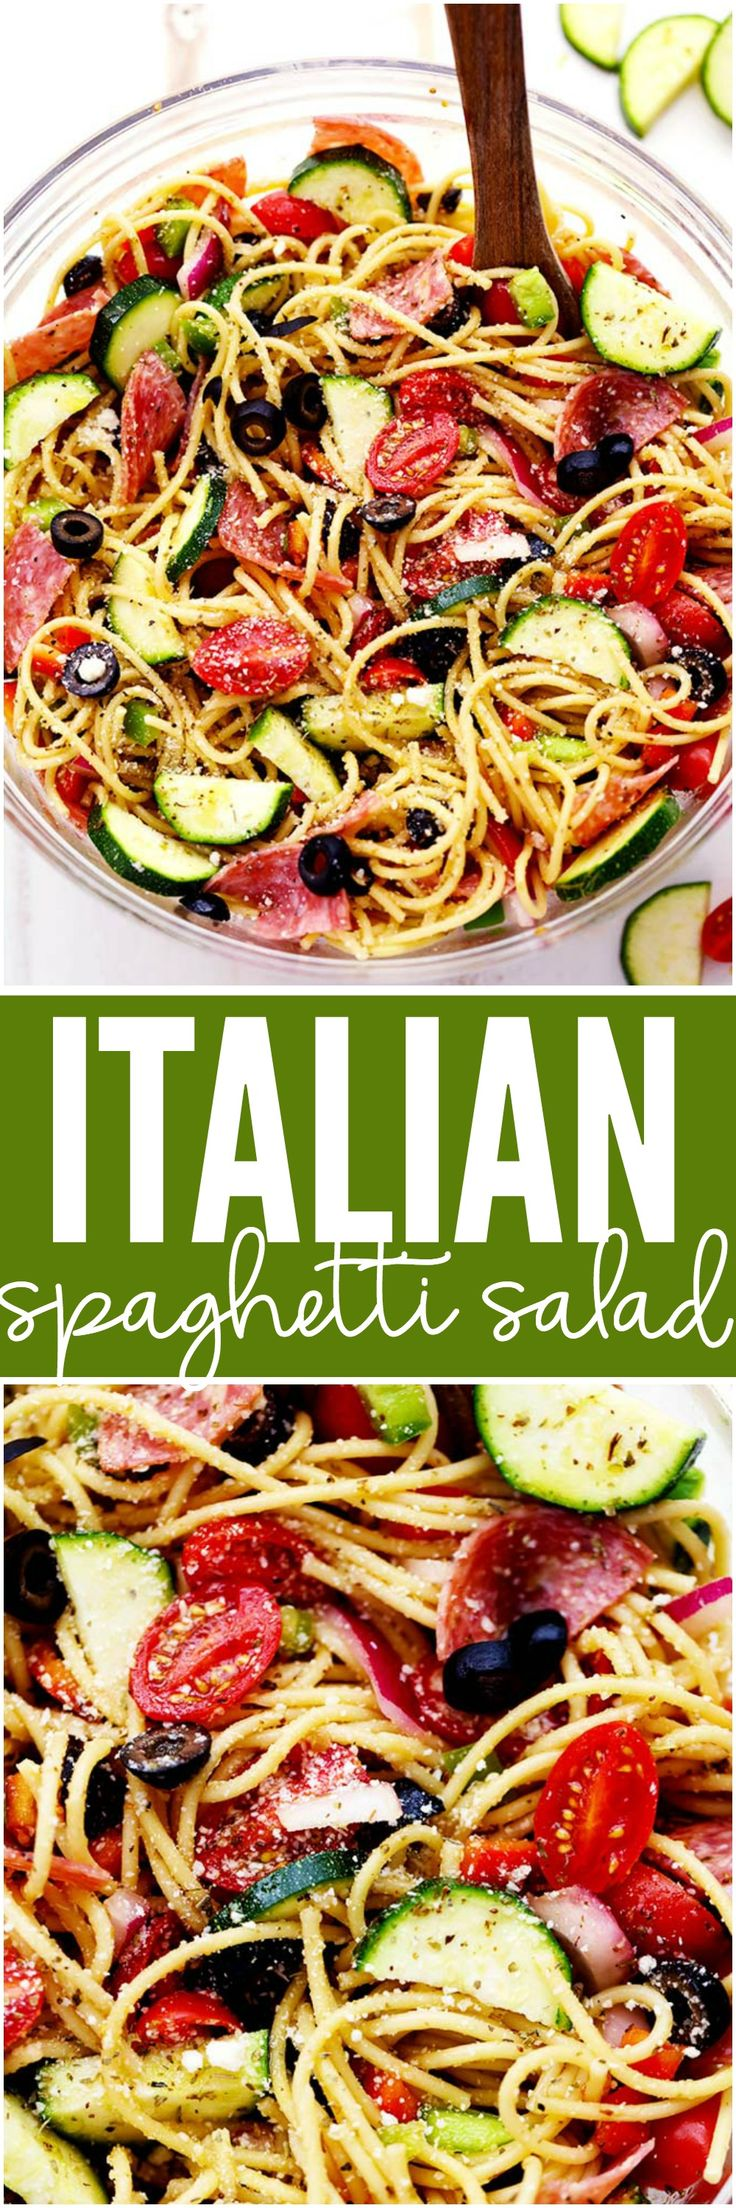 Italian Spaghetti Salad is made with spaghetti, fresh summer veggies, salami and tossed in a homemade zesty italian dressing. This is a summer…